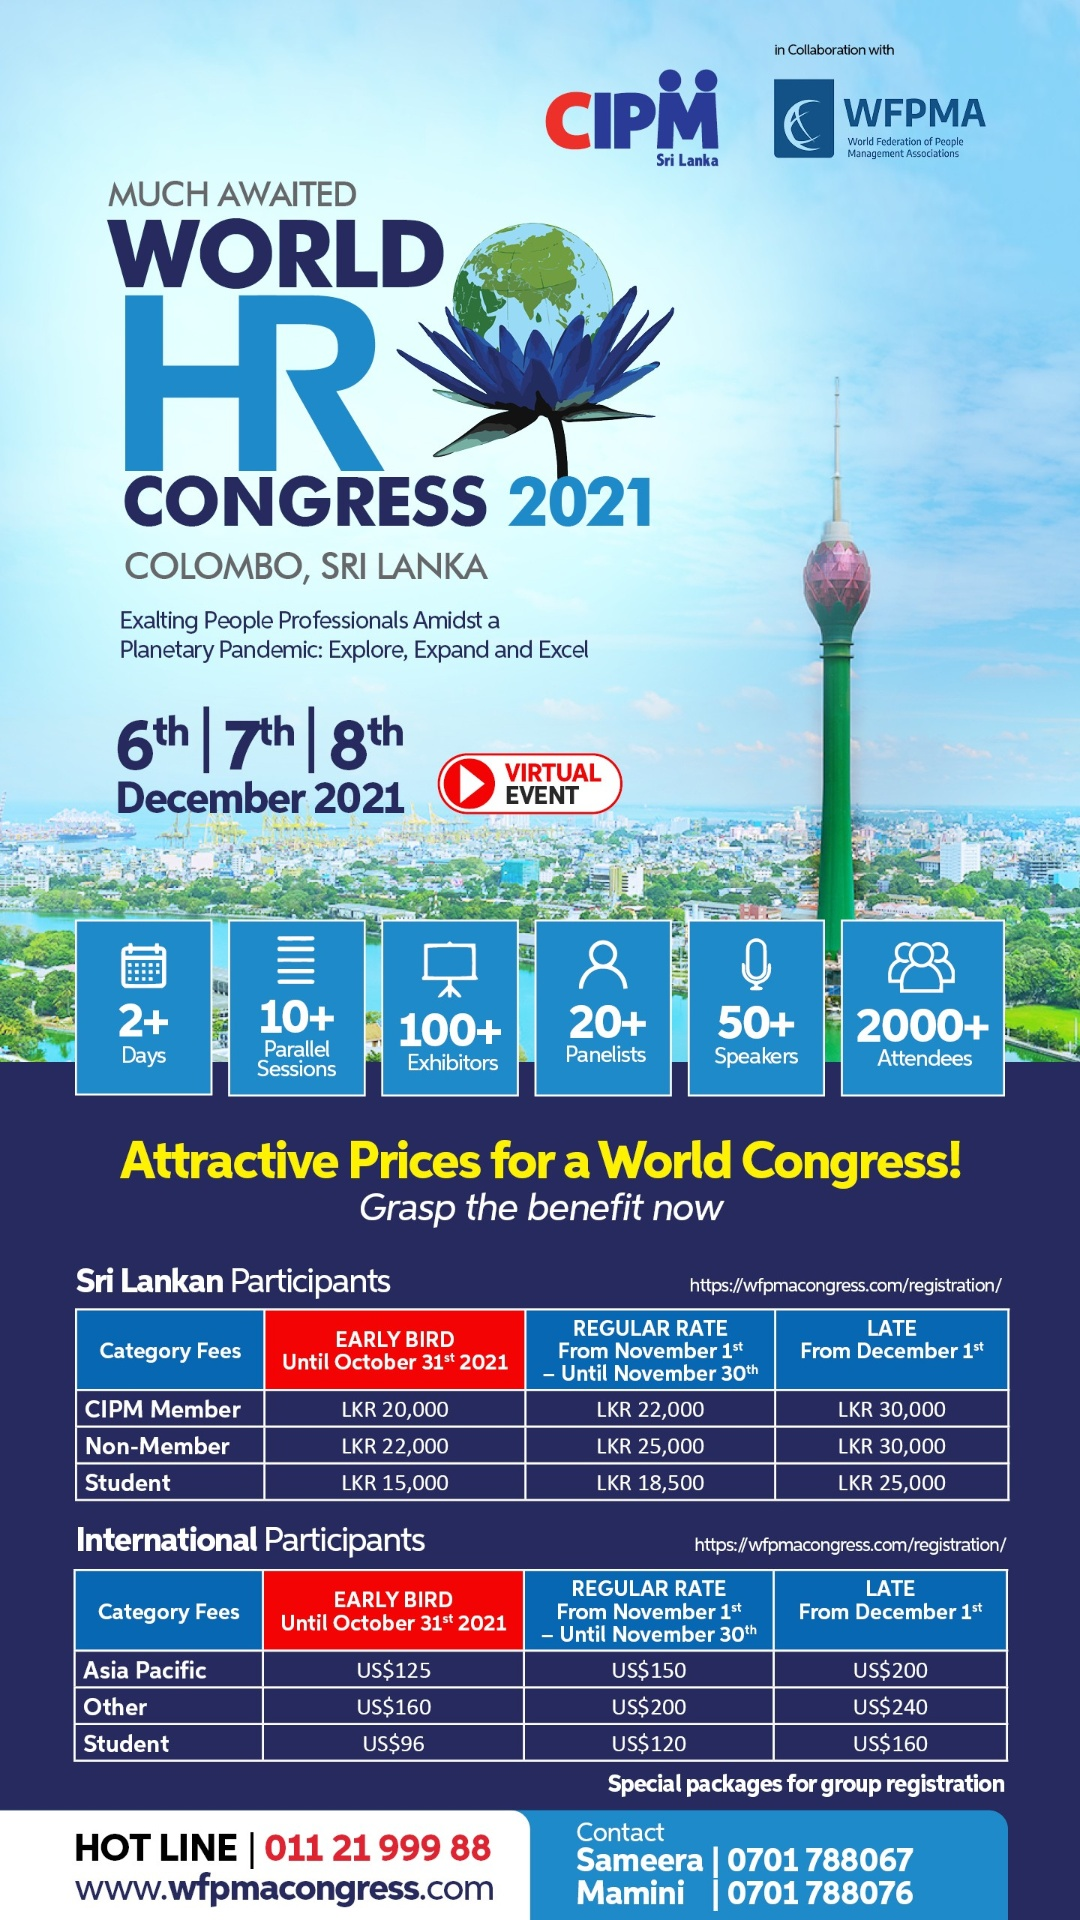 Register Now for the World HR Congress 2021